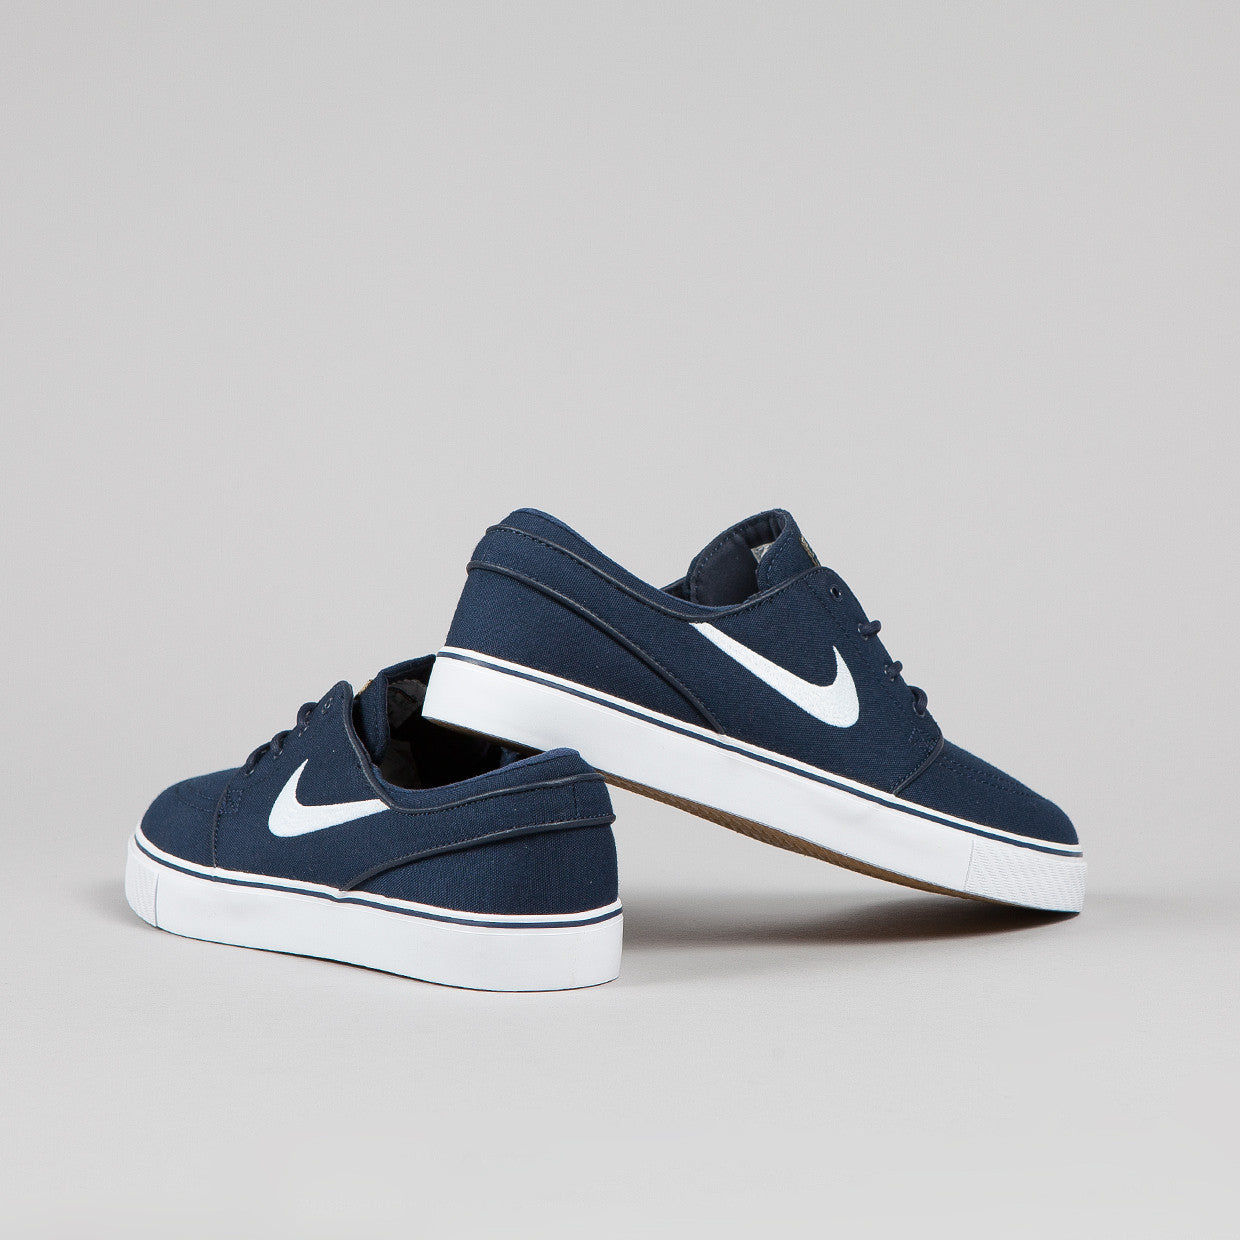 Nike SB Stefan Janoski CNVS Obsidian / White - Gum light Brown - Metallic